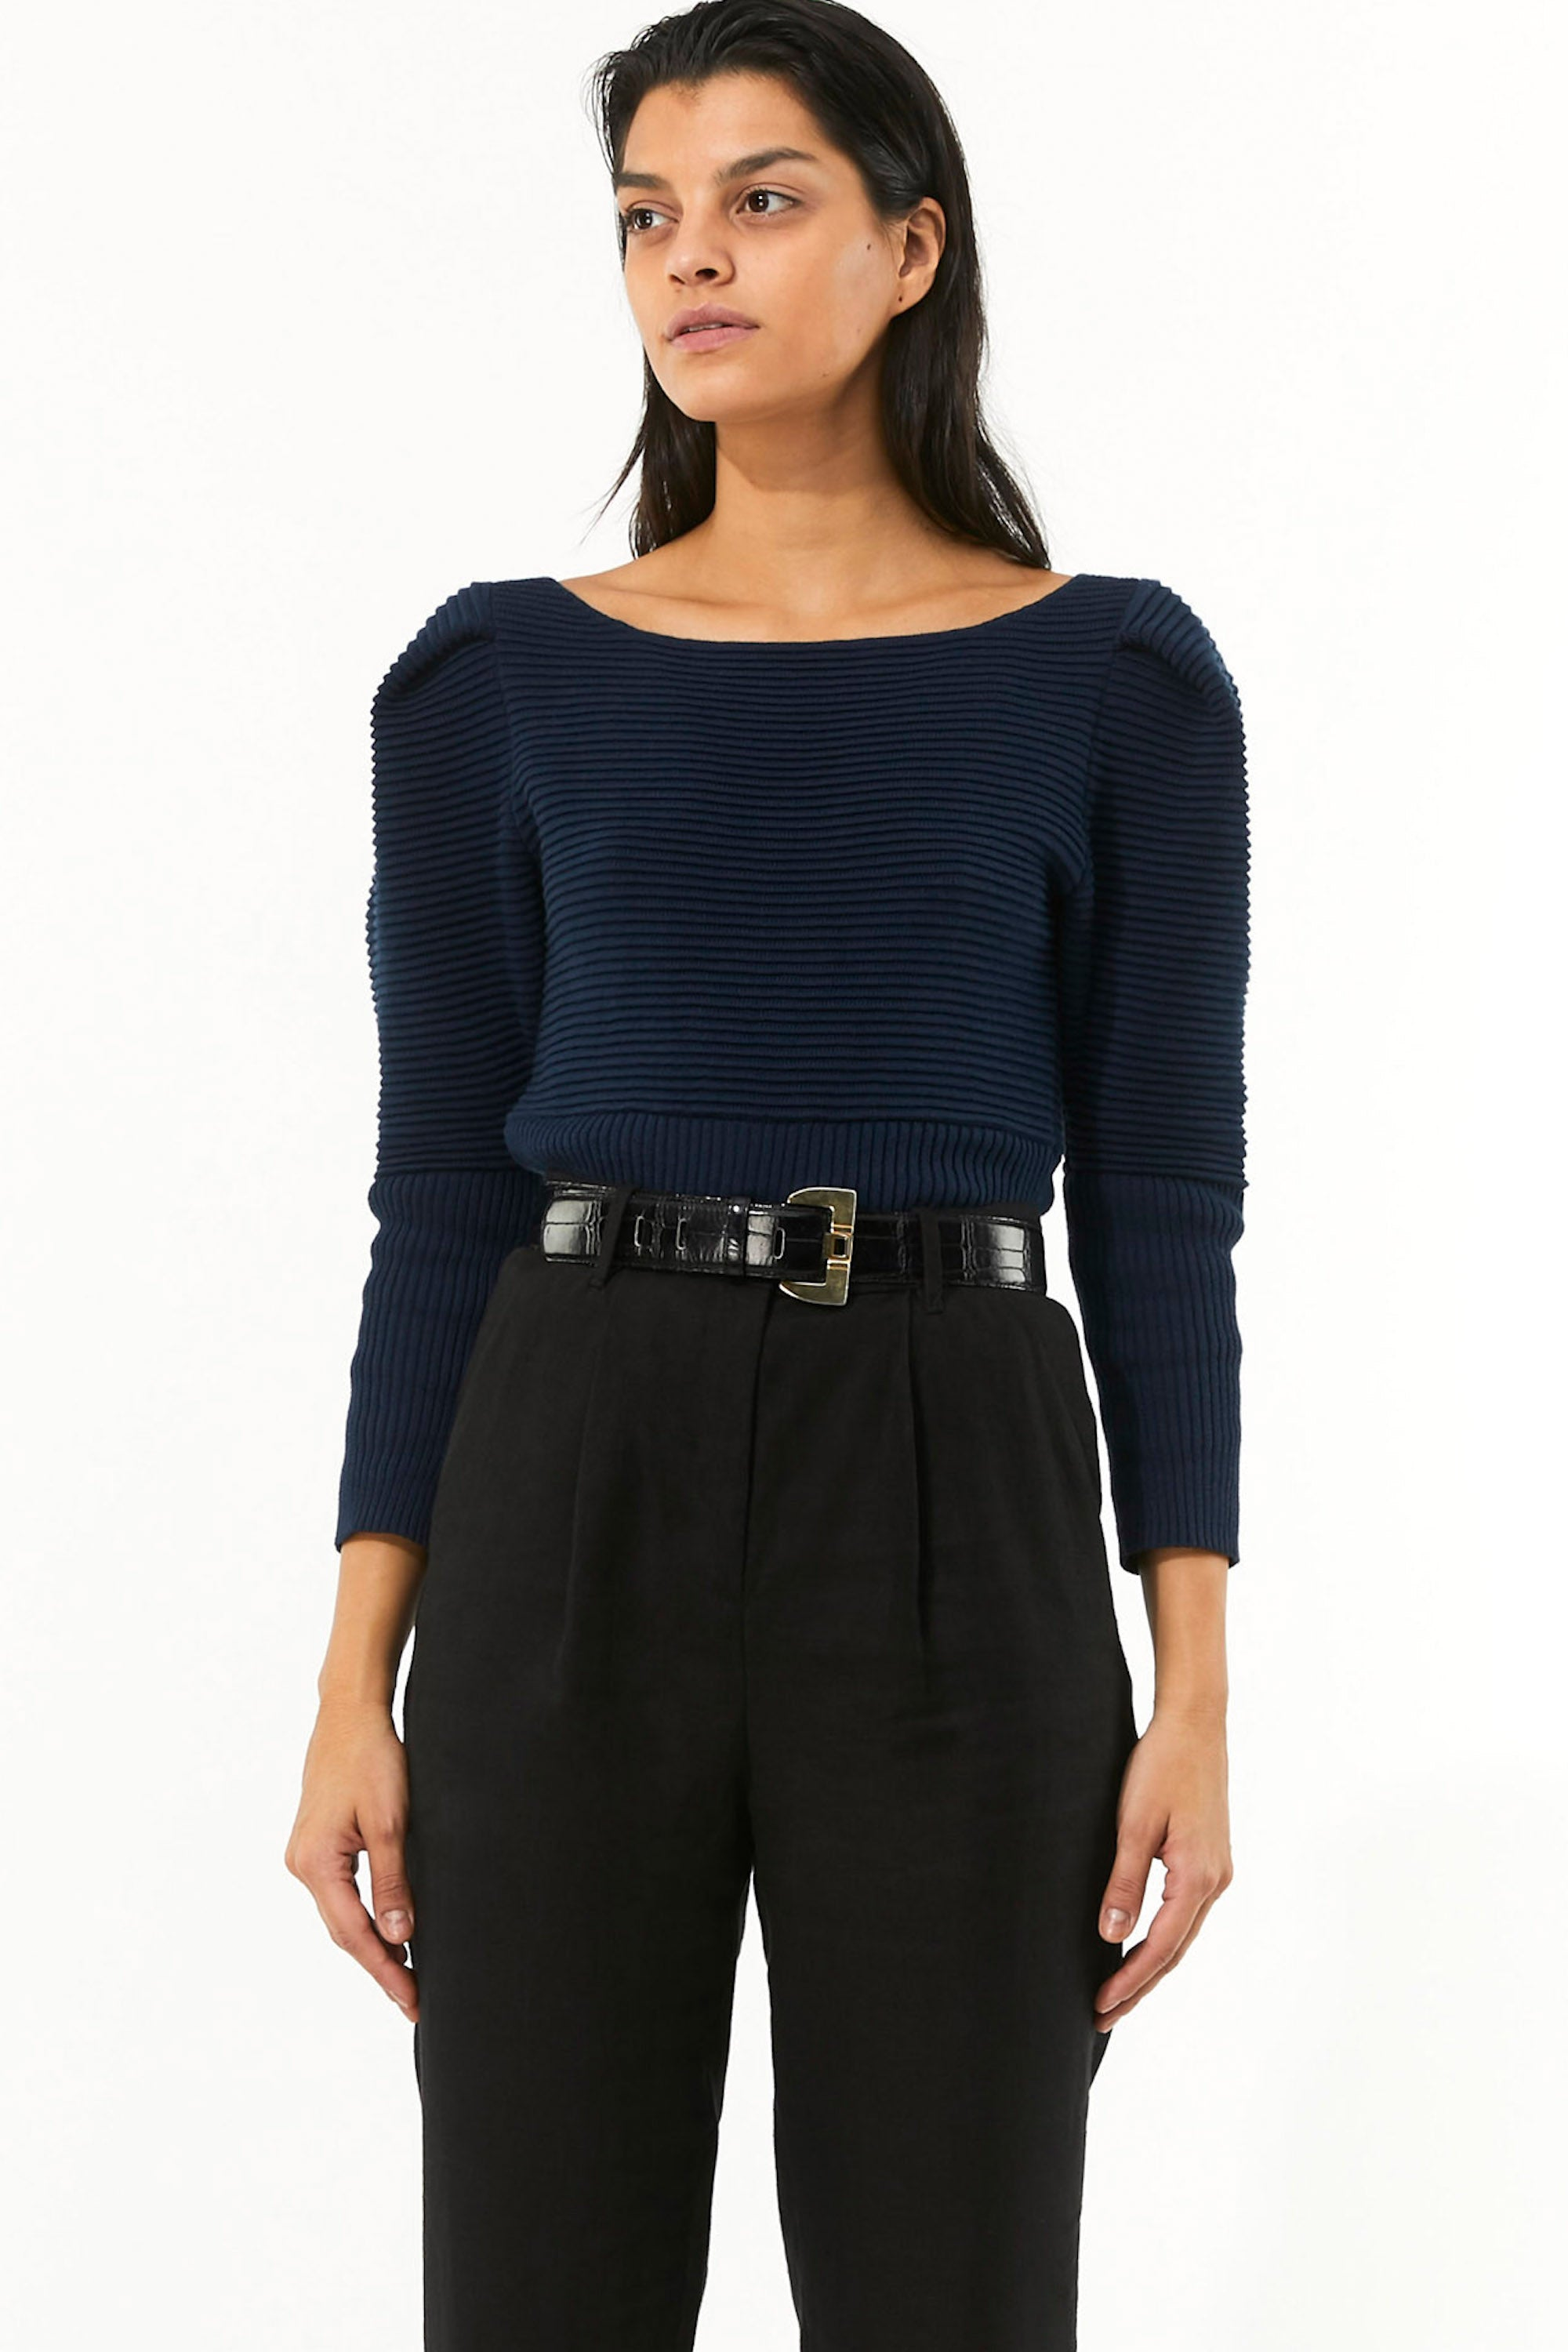 Mara Hoffman Indigo Helena Sweater in organic cotton (with belt)